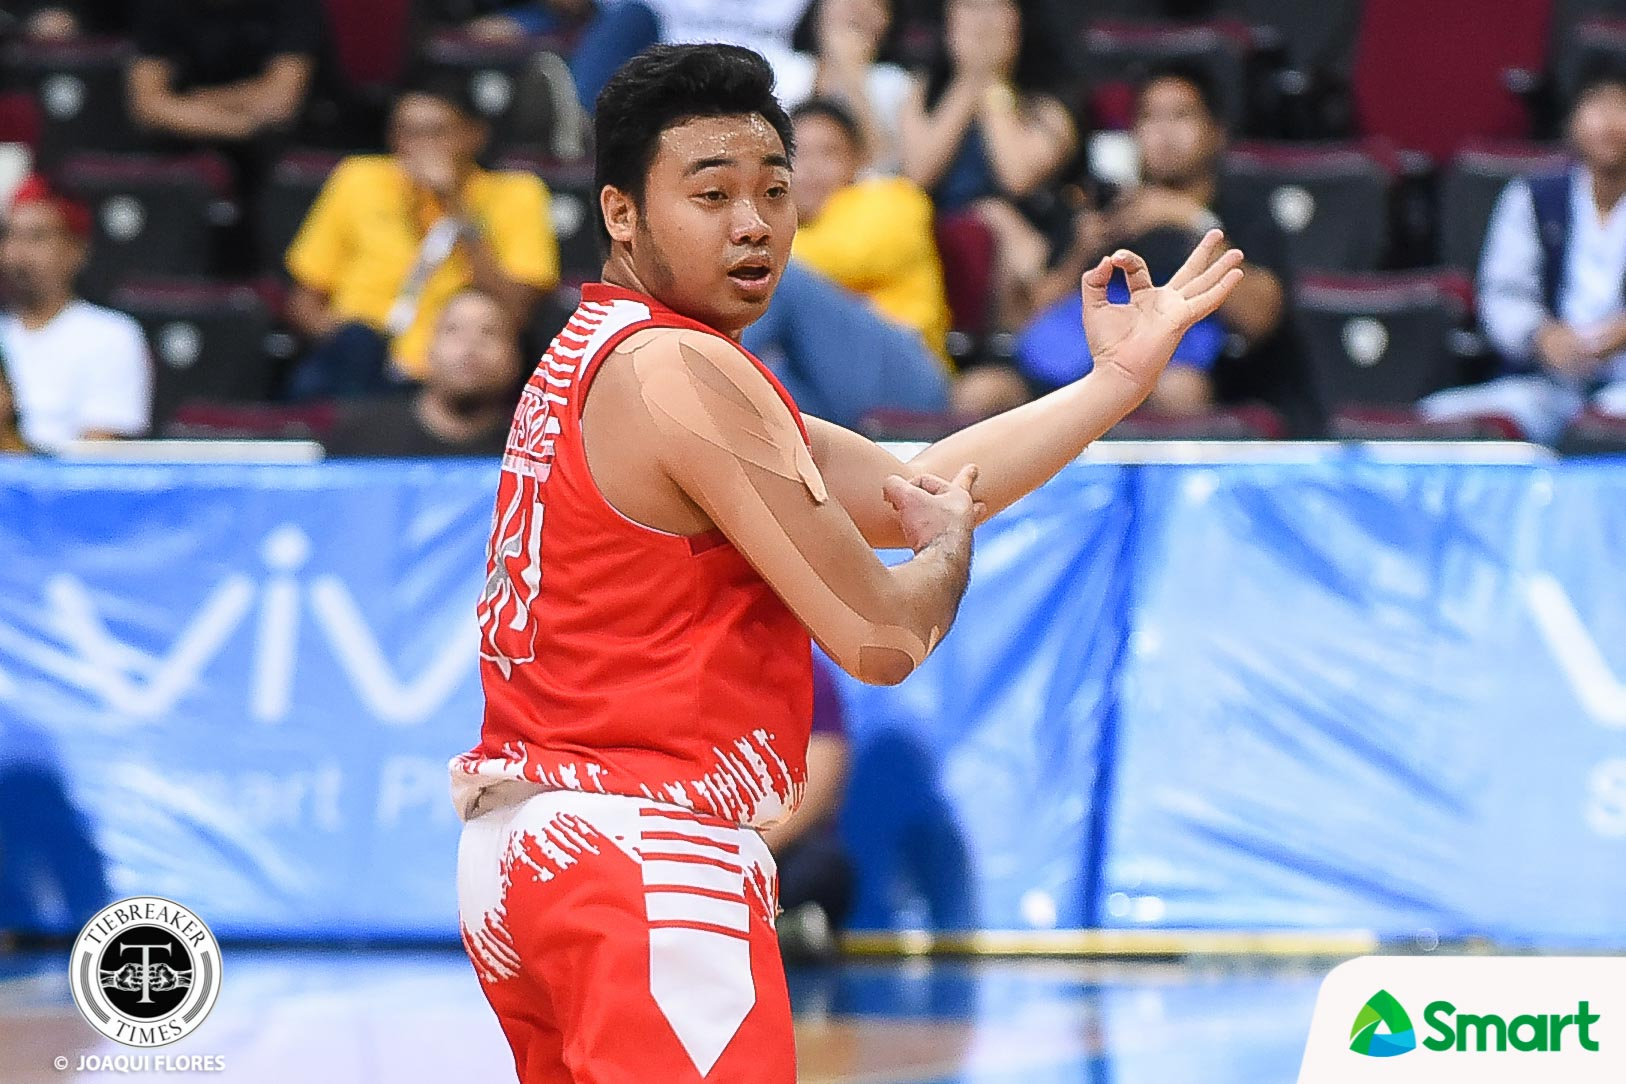 Tiebreaker Times Alvin Pasaol to reinforce Letran-Petron in PBA D-League Basketball CSJL News PBA D-League  Letran-Petron Knights Alvin Pasaol 2019 PBA D-League Season